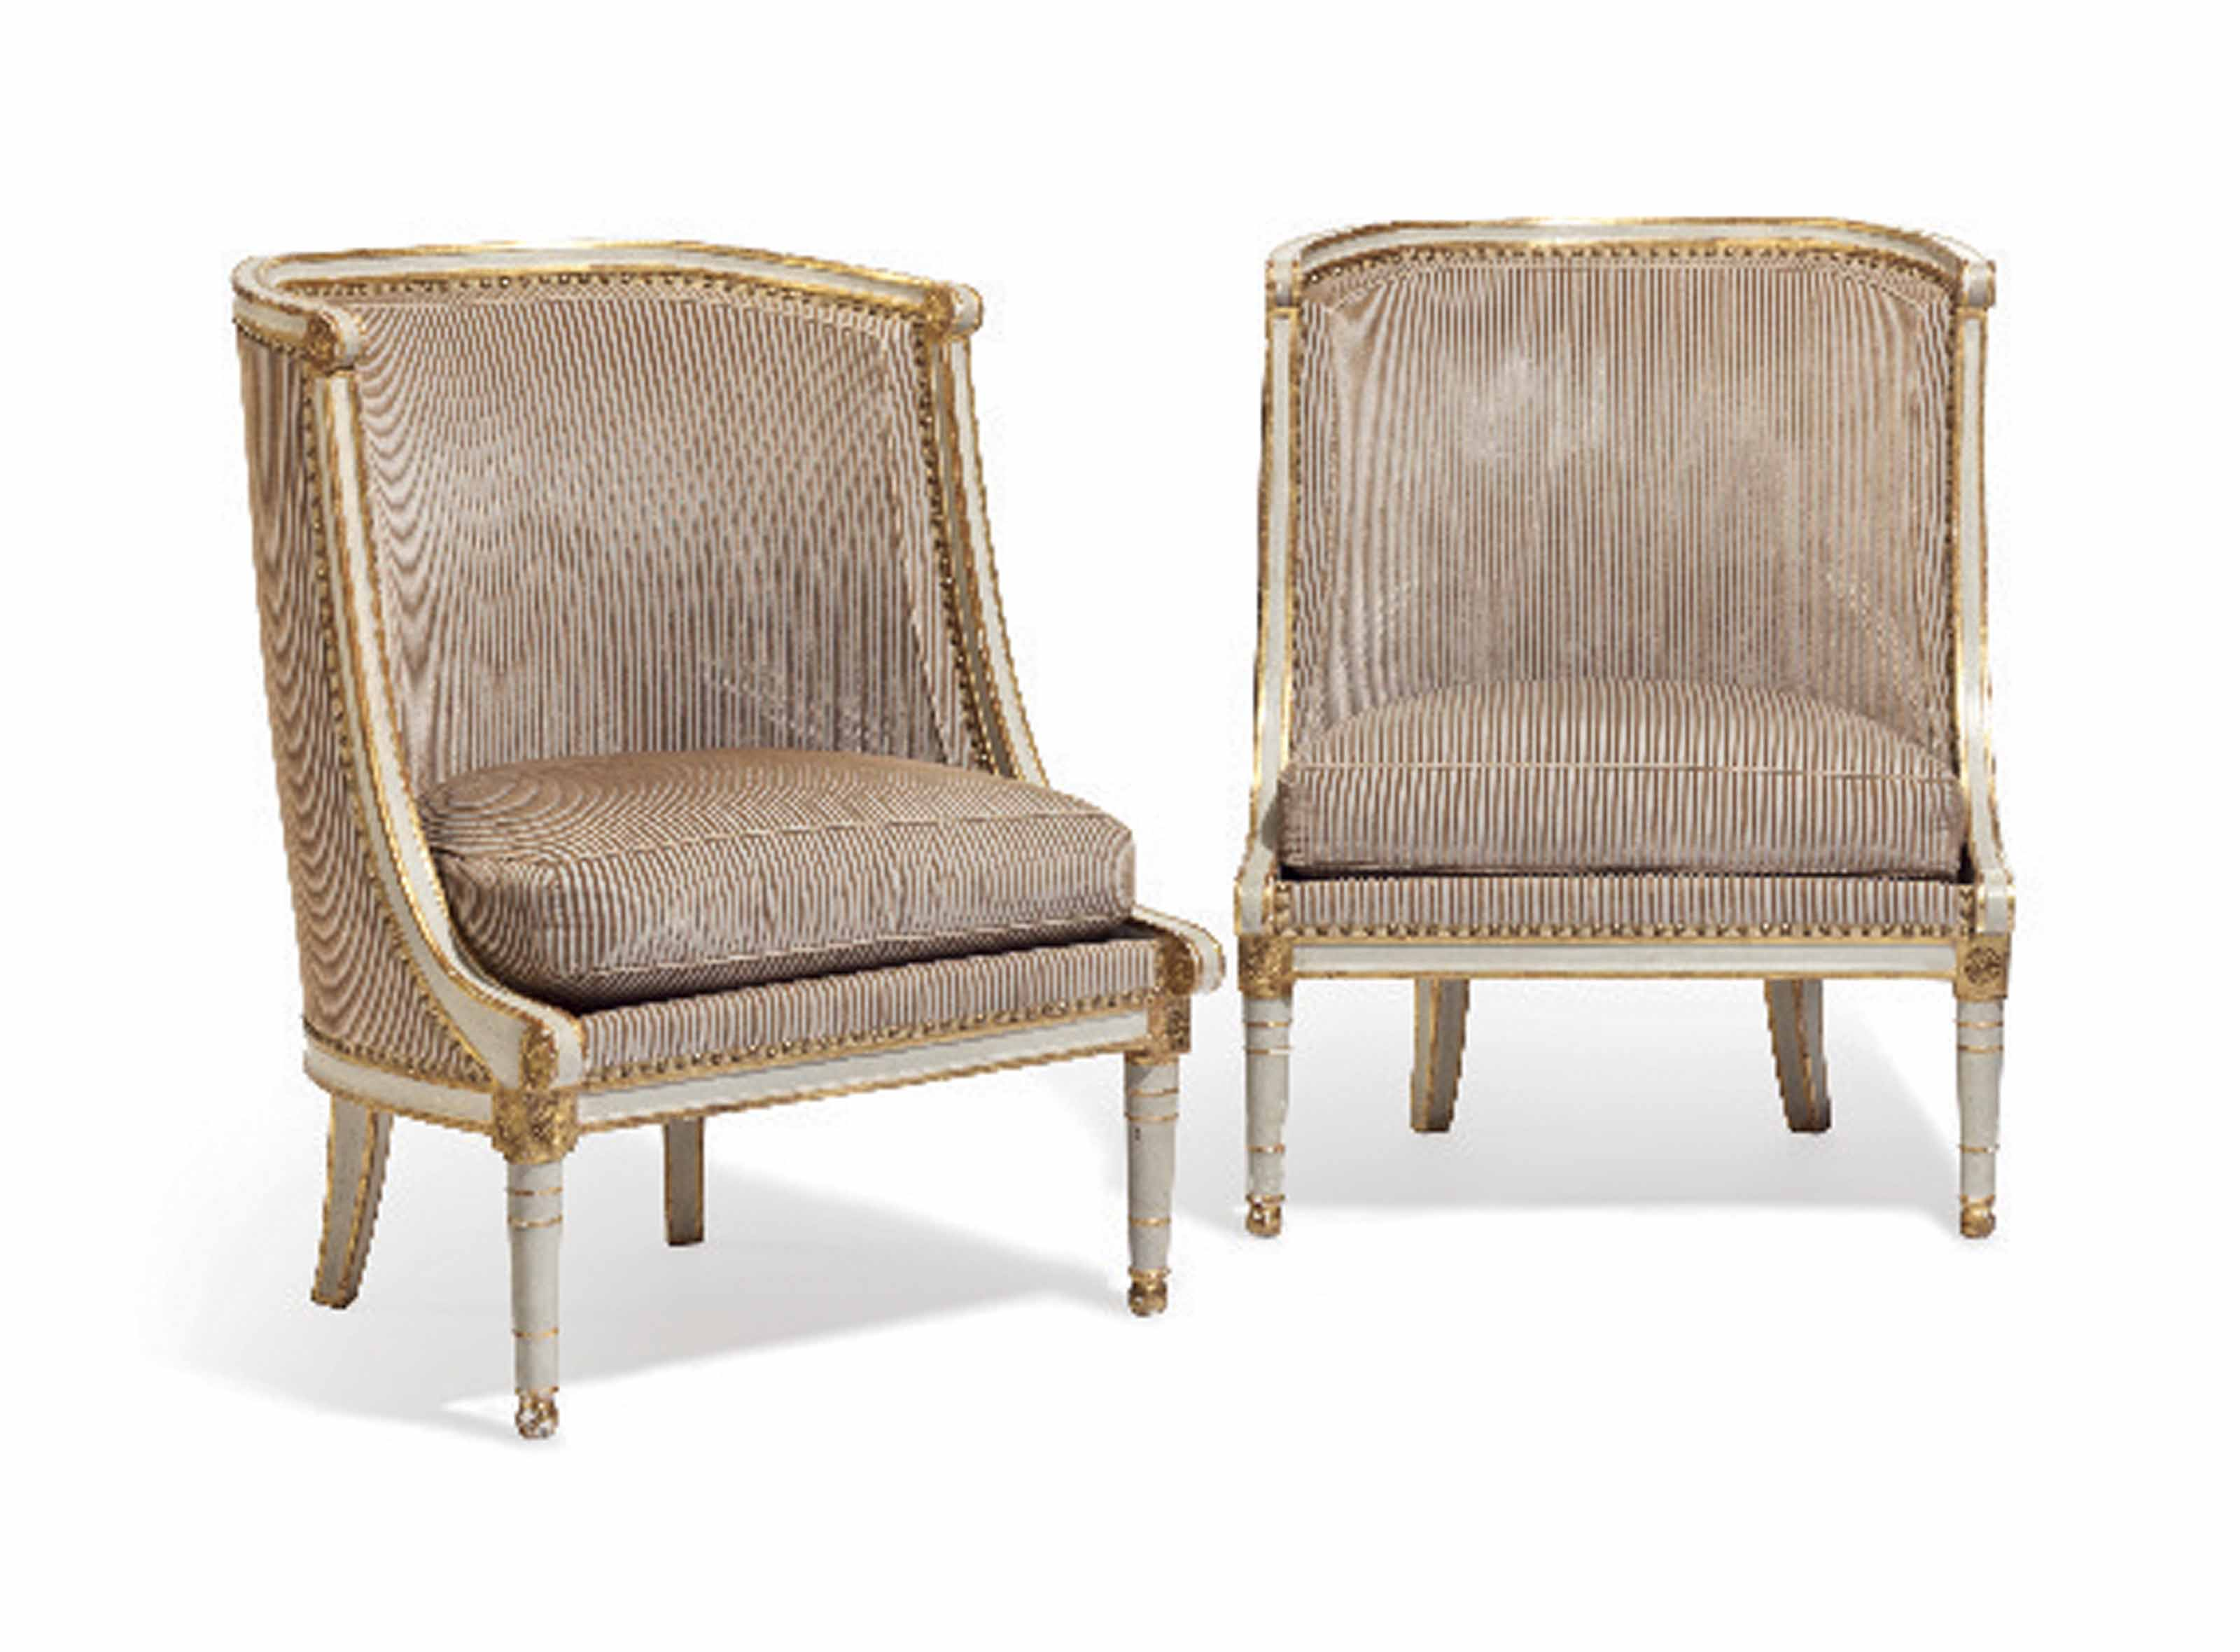 A PAIR OF DIRECTOIRE GRAY-PAINTED AND PARCEL-GILT CHAISES GONDOLE